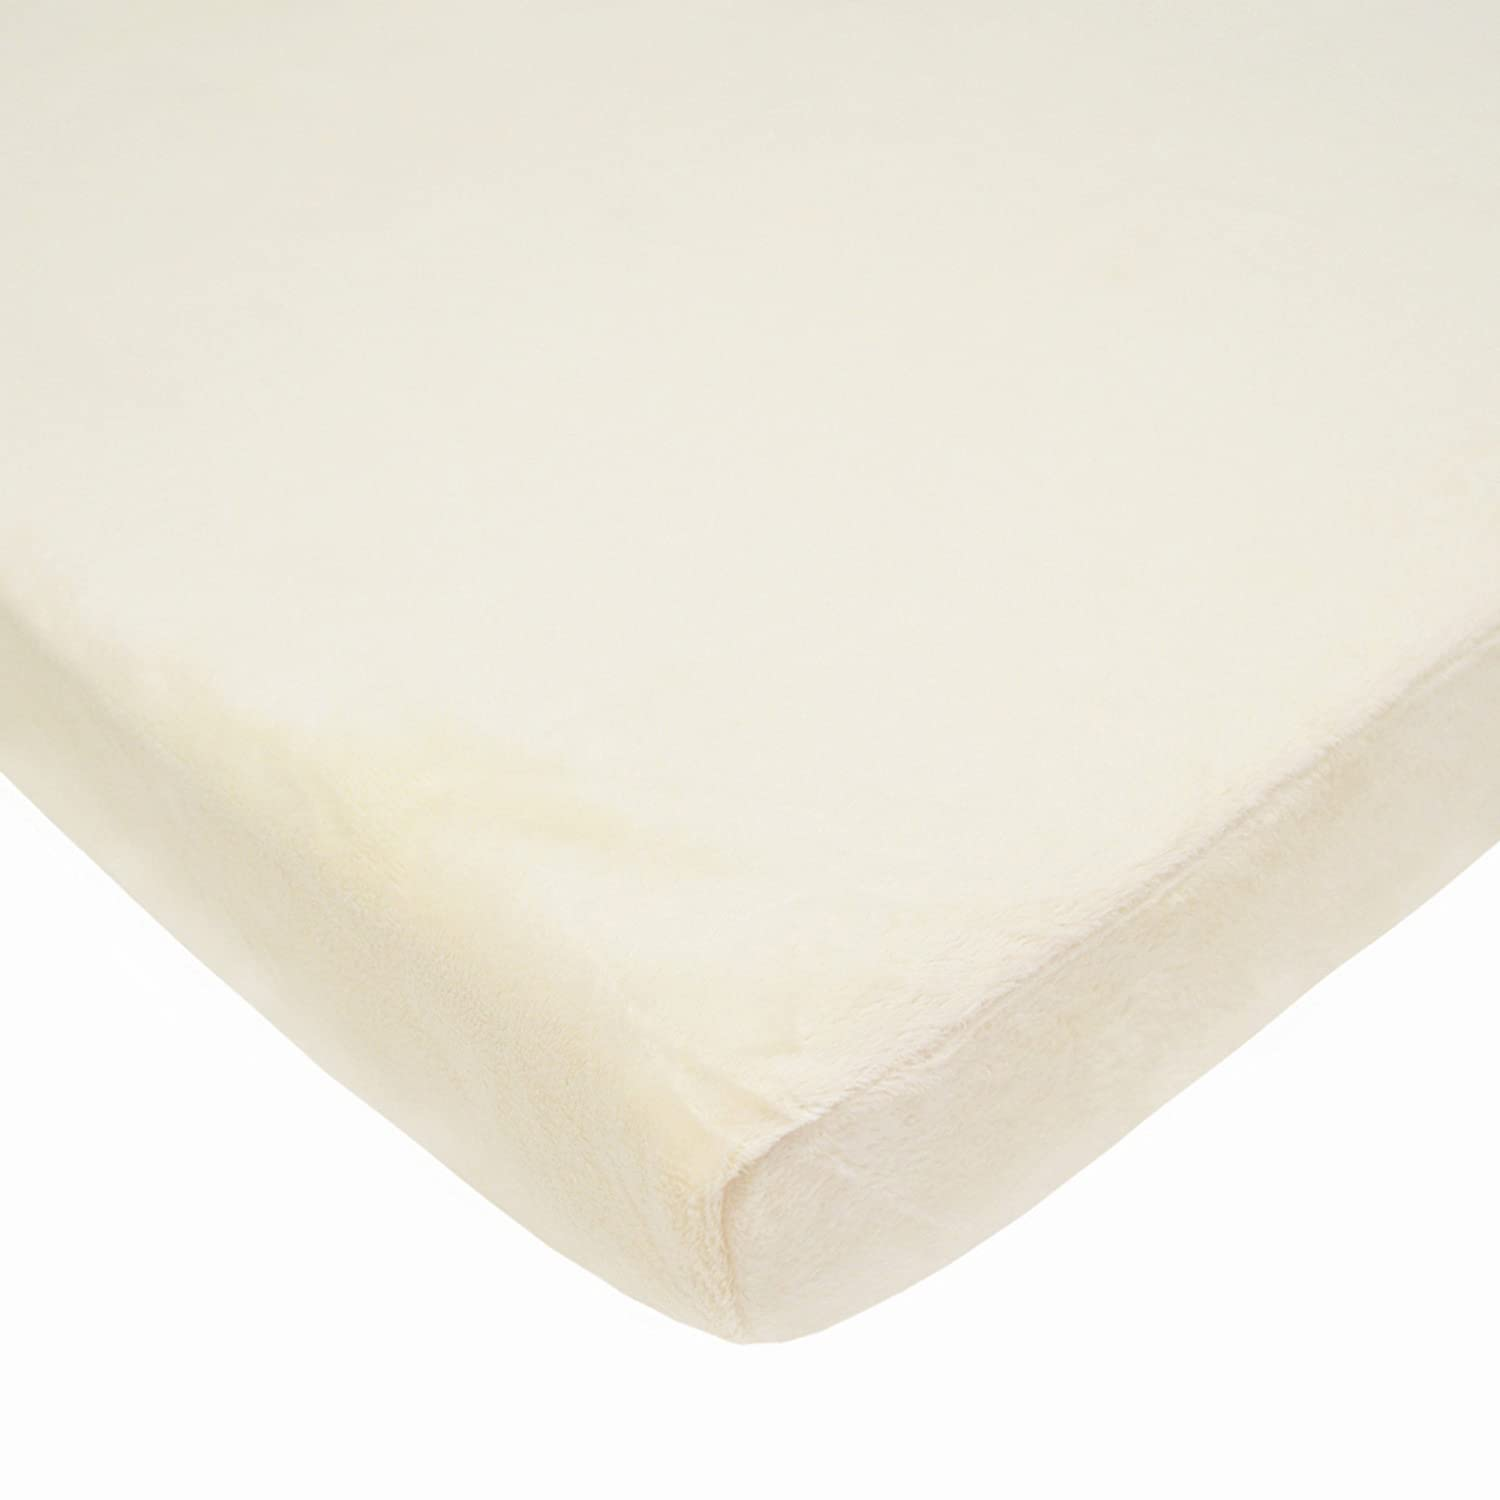 American Baby Company 4552-MZ Heavenly Soft Chenille Bassinet Sheet (Maize)